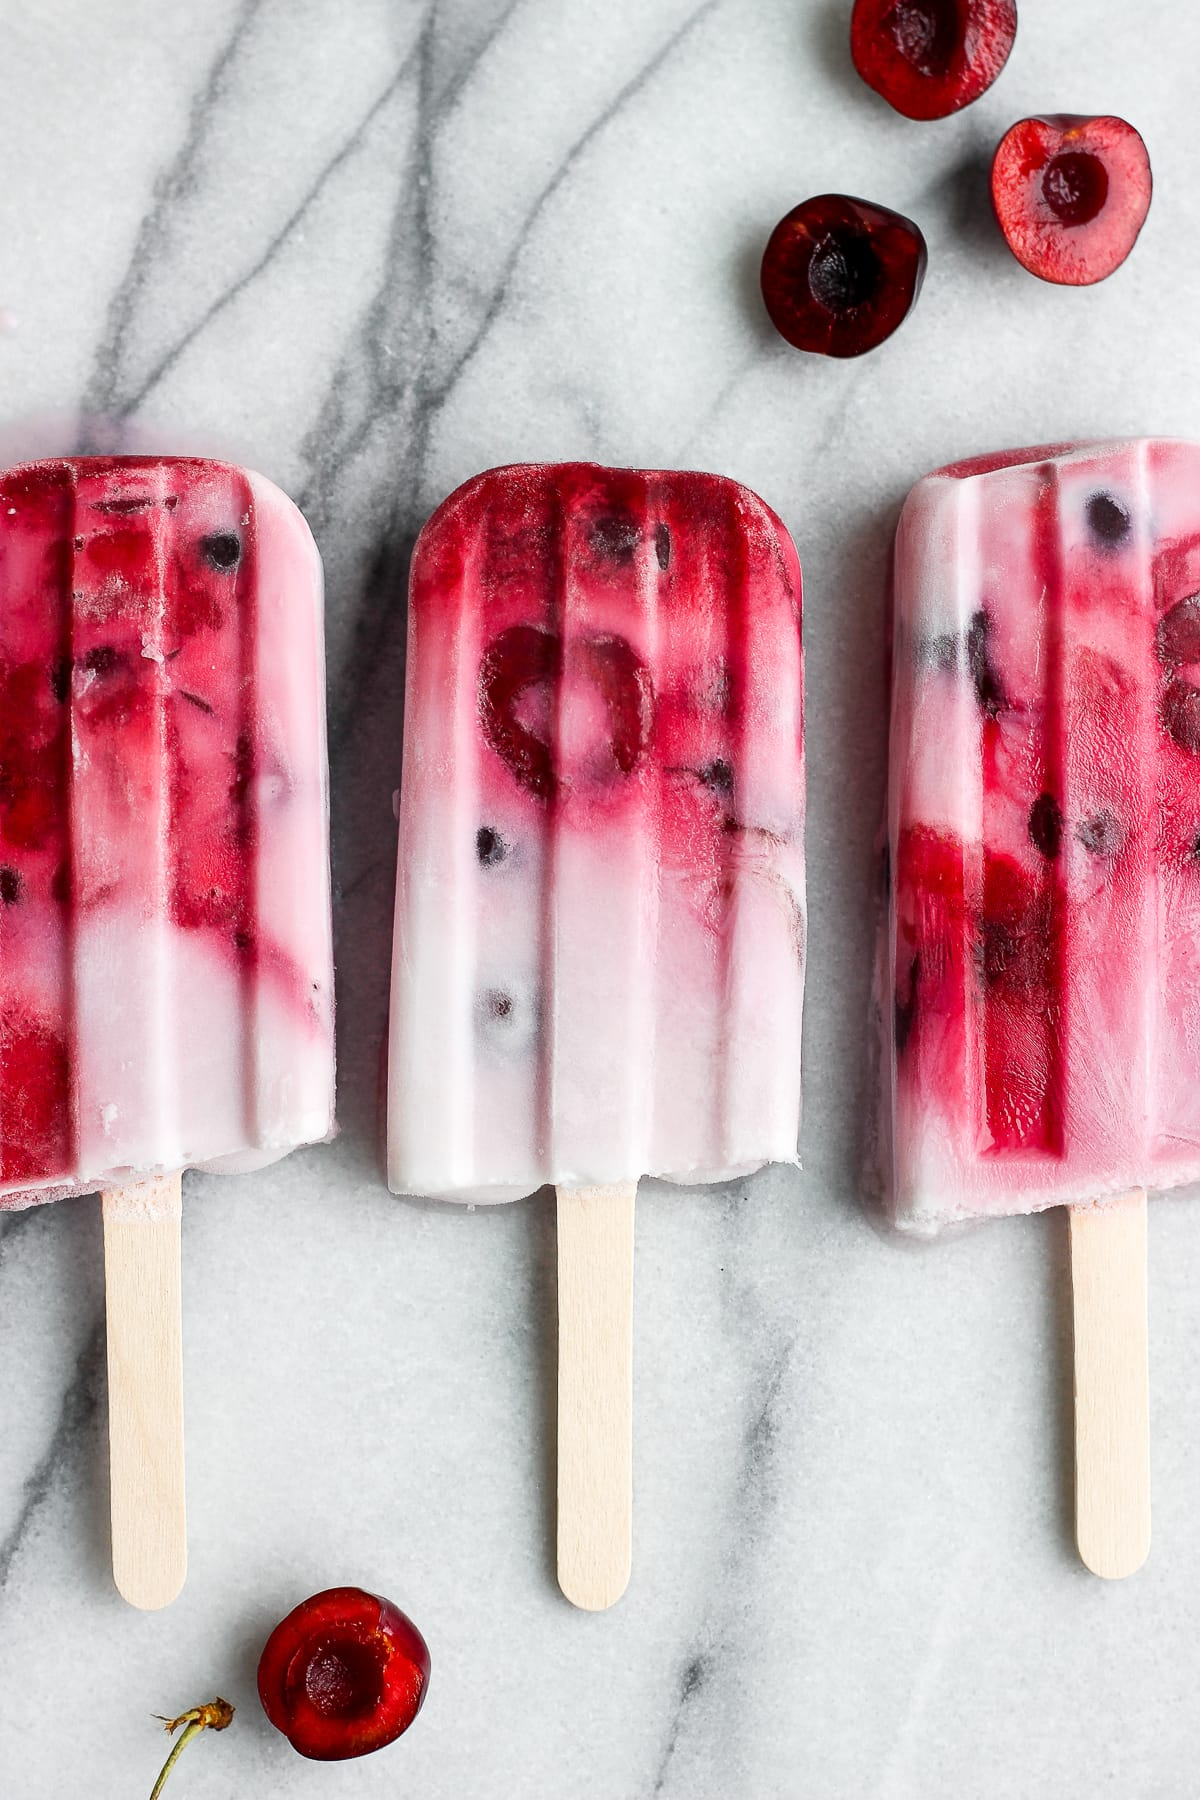 Healthy Strawberry Cherry and Cream Popsicles - a delicious summer treat that is vegan and dairy-free! #popsicles #vegan #dairyfree